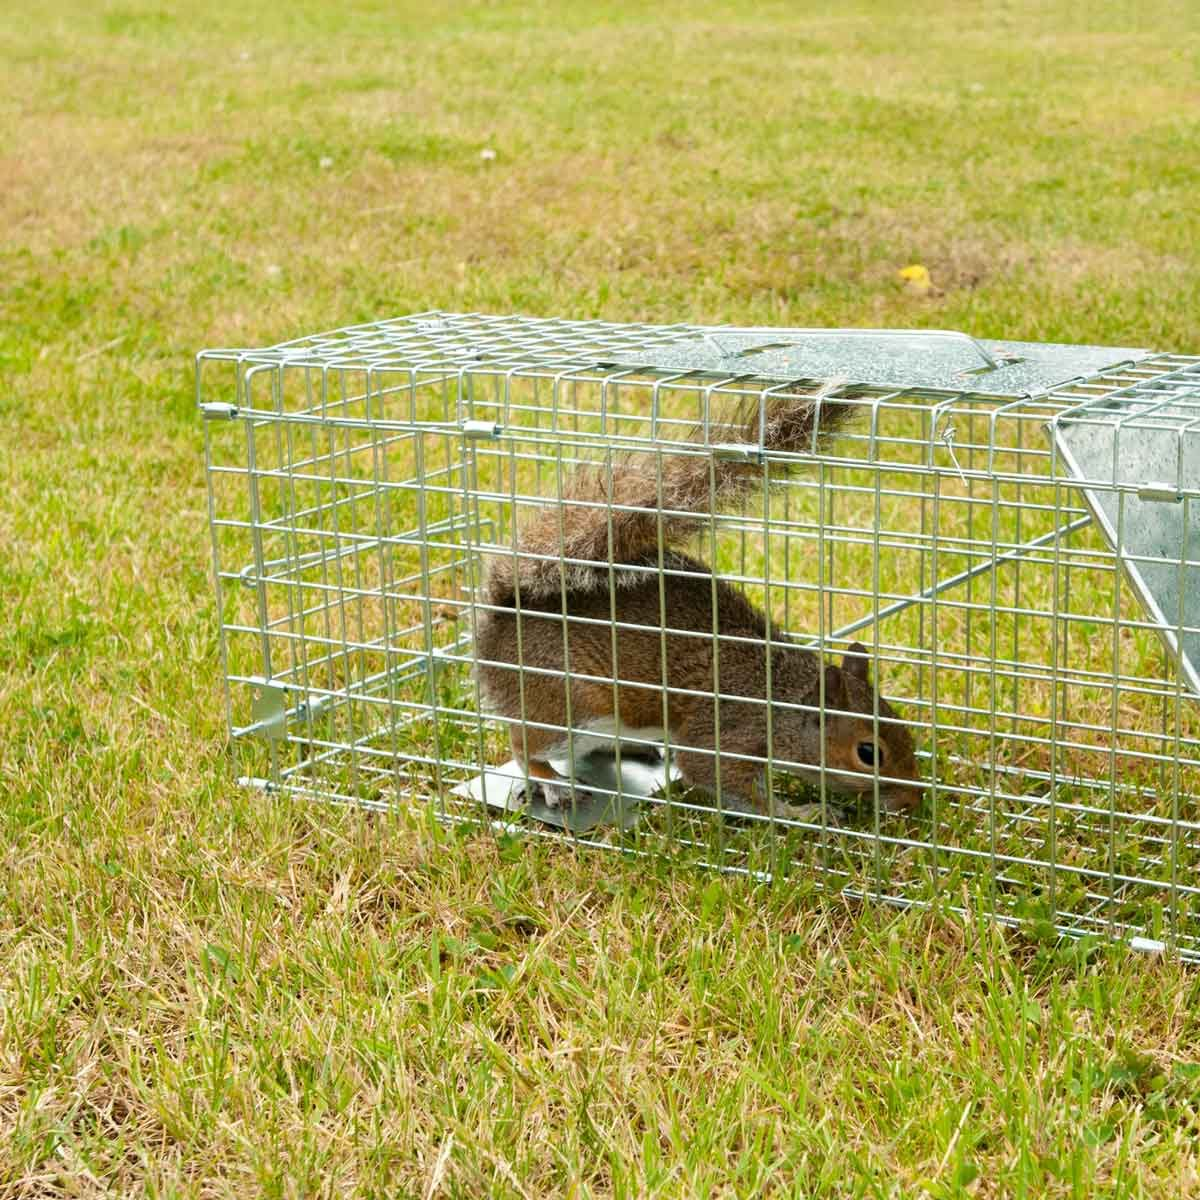 Live trap for squirrels and pests